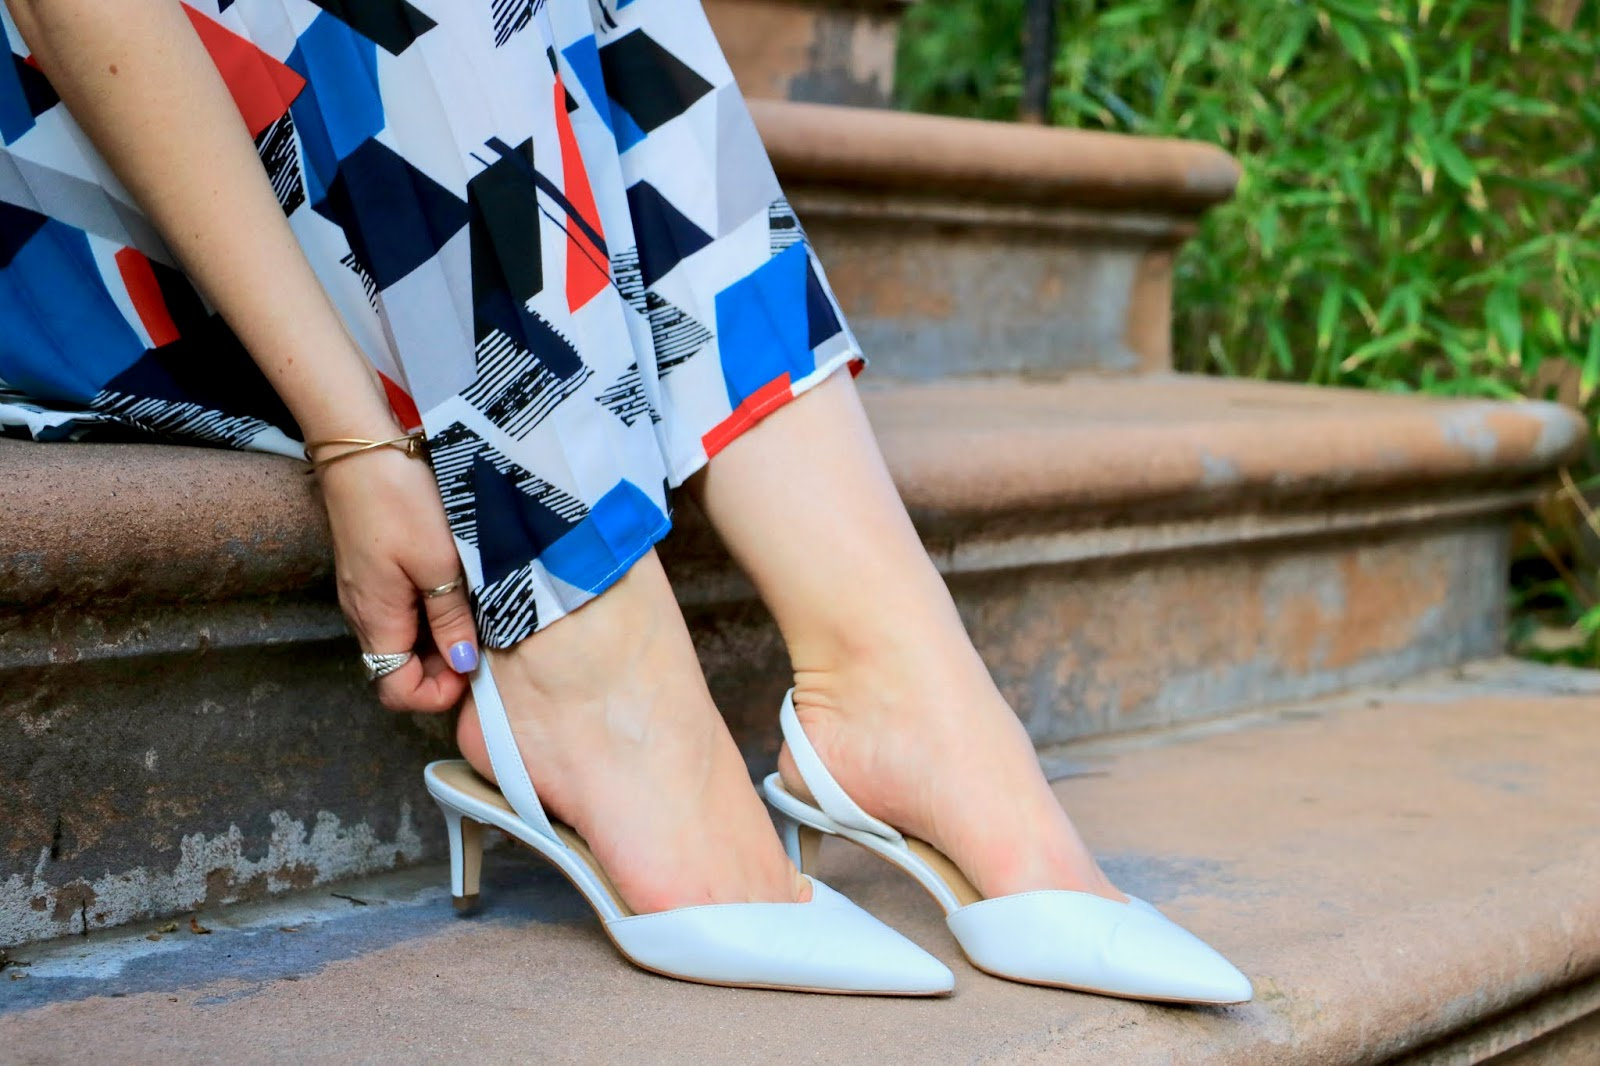 Nyc fashion blogger Kathleen Harper wearing white heel slides